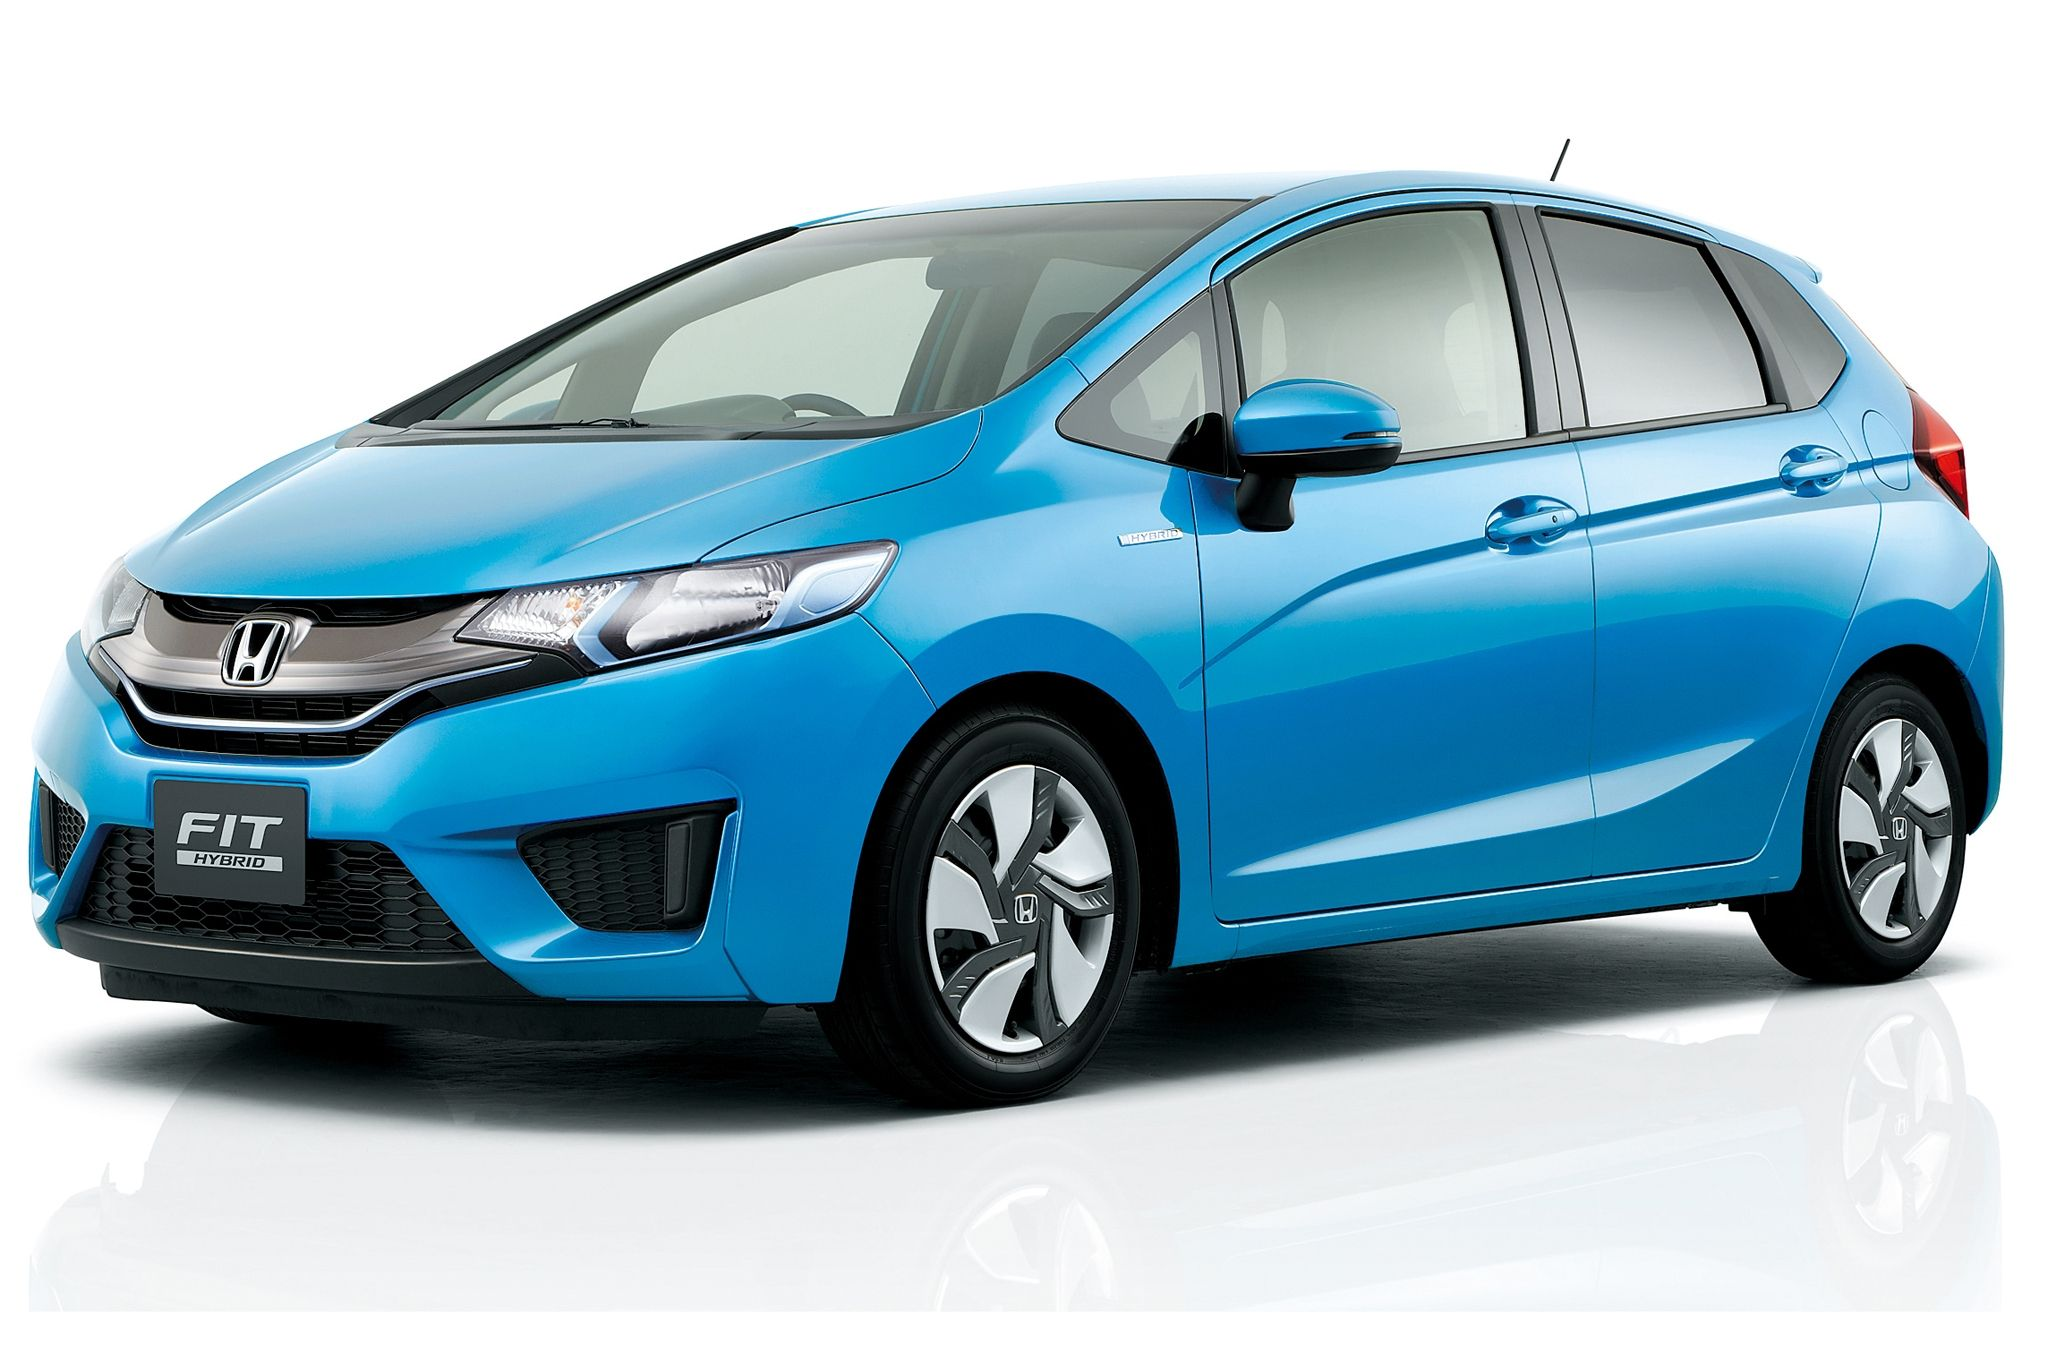 Honda Fit 2015 Blue Edition 2015hondafit Car Autos Review